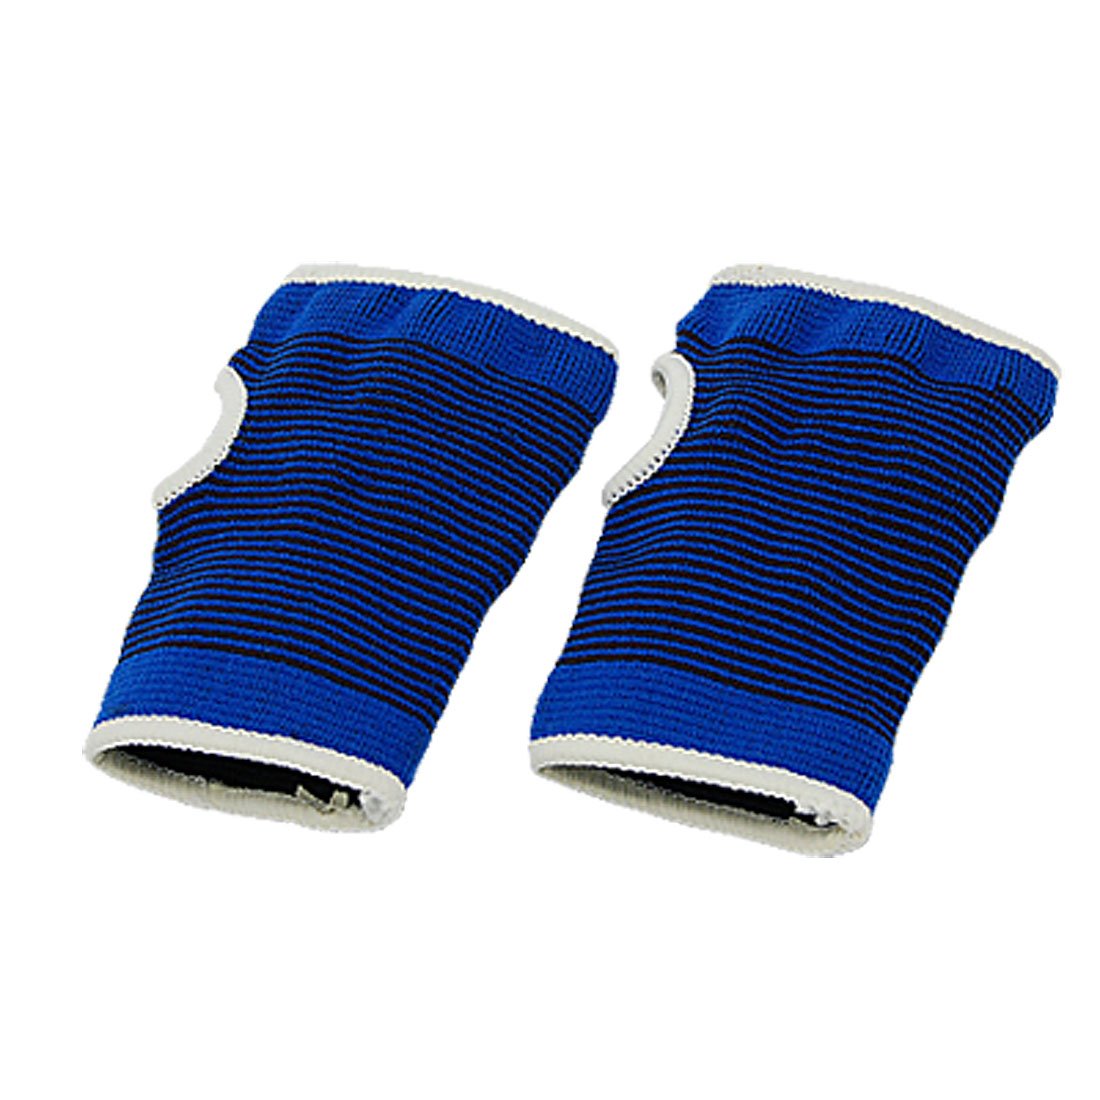 Sport Wrist Hand Brace Elastic Palm Guard Support Protect Blue Pair